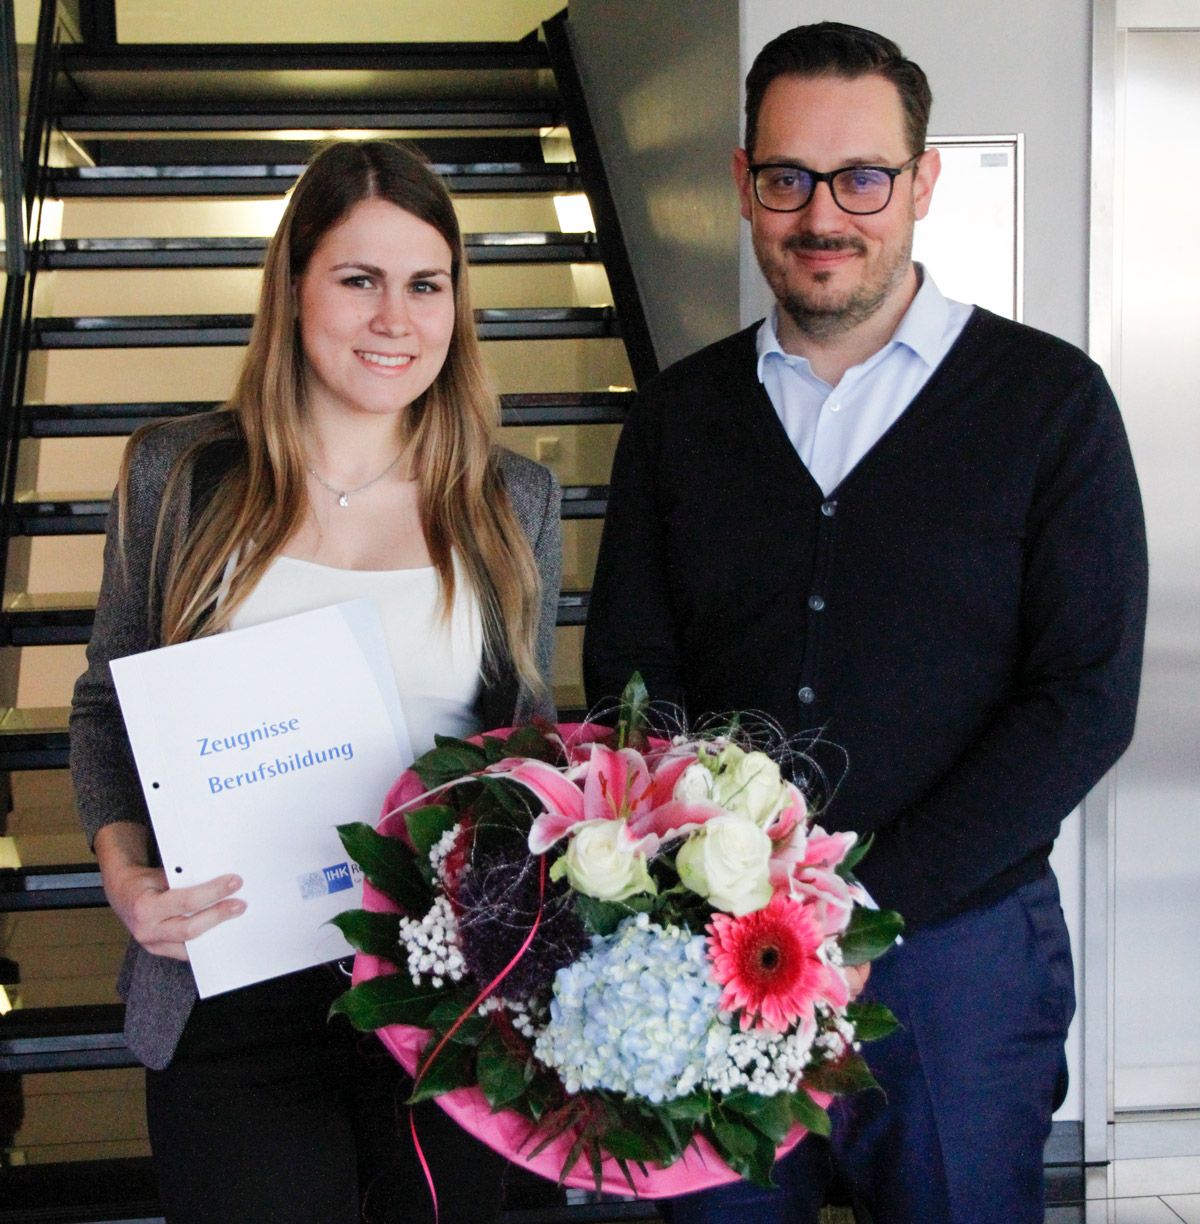 Sandra Hirtreiter finished her further education as the best of the course